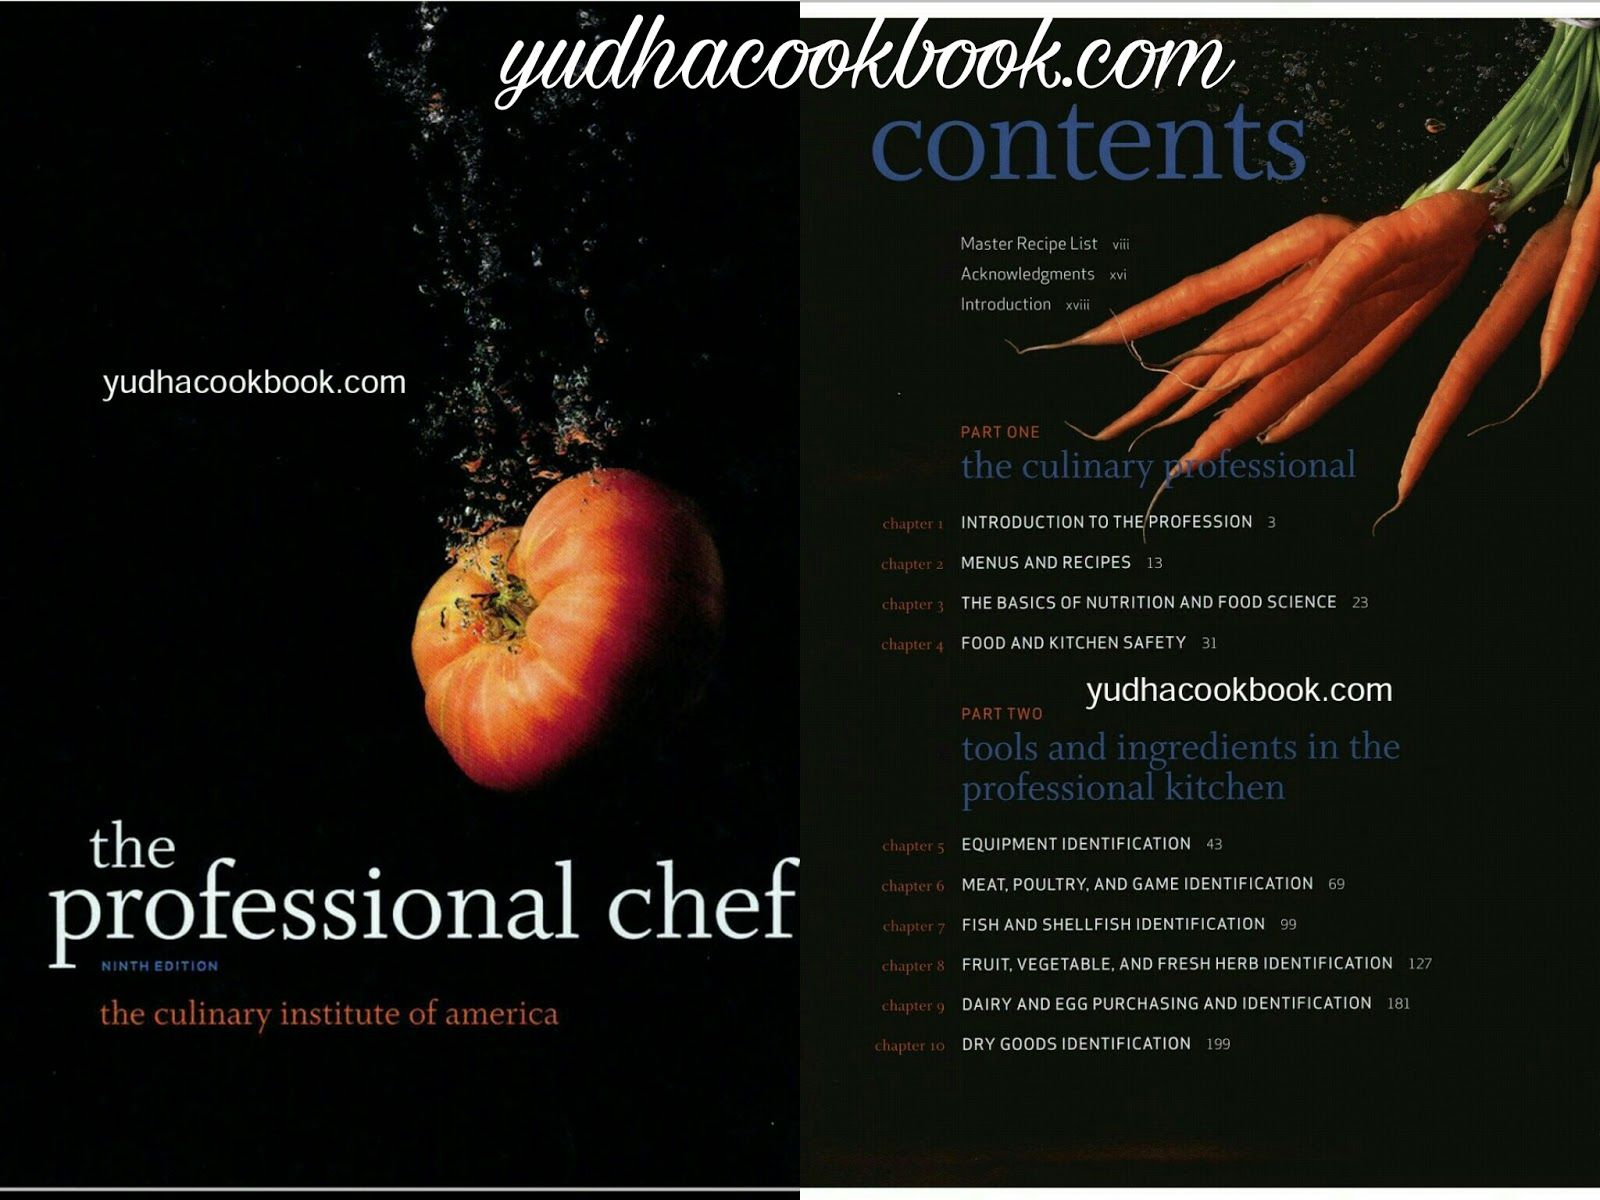 Download ebook the professional chef 9th ninth edition the download ebook the professional chef 9th ninth edition the culinary institute of america fandeluxe Choice Image